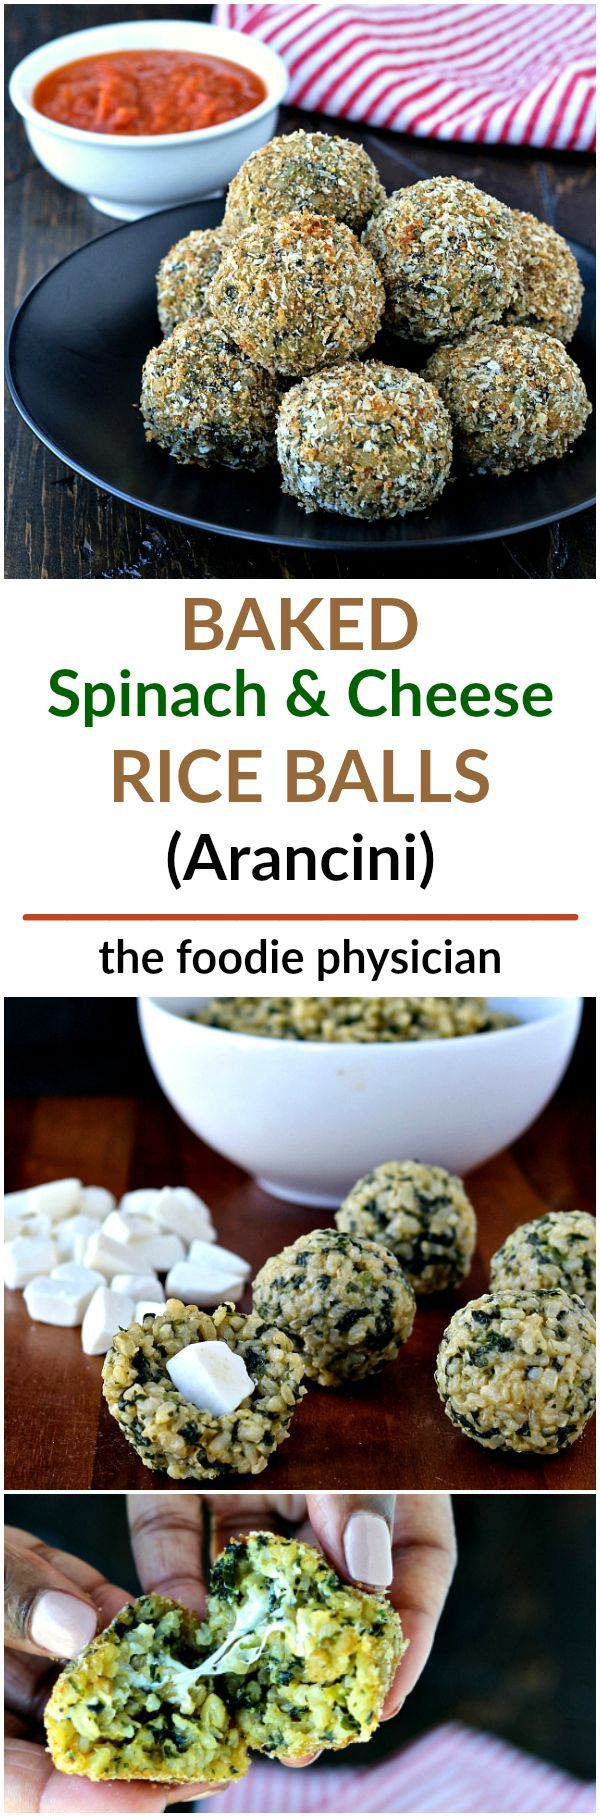 Baked Spinach and Cheese Rice Balls- these delicious rice balls are a healthy remake of classic Italian arancini.   @foodiephysician